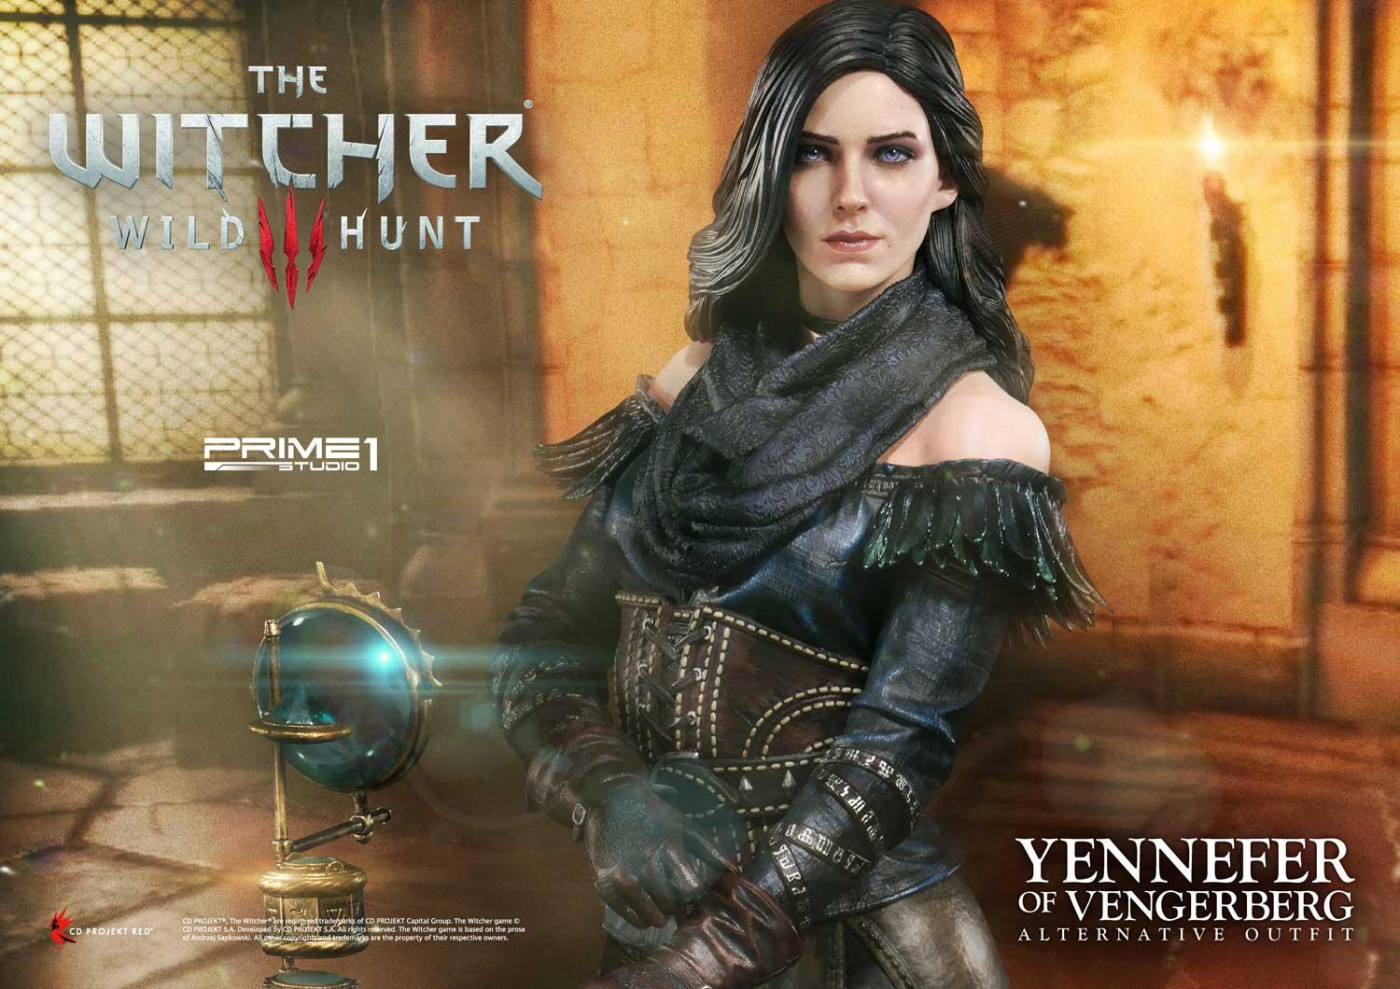 Premium Masterline The Witcher 3 Wild Hunt Yennefer Of Vengerberg Alternative Outfit By Prime 1 Studio